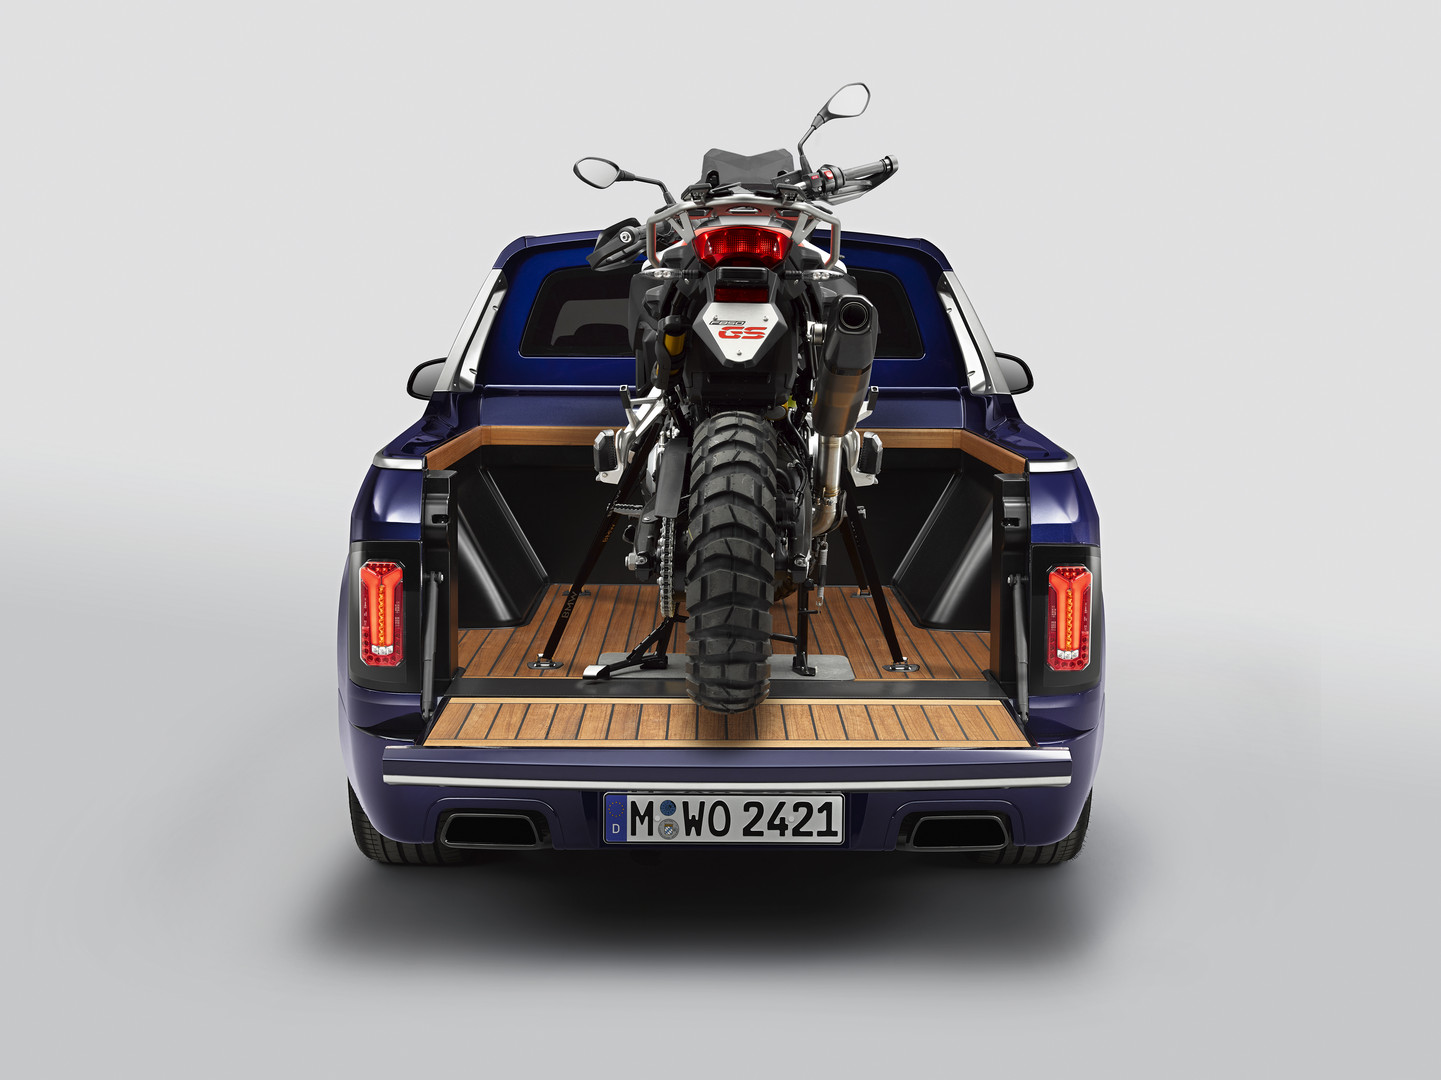 BMW X7 Pick-up Bike